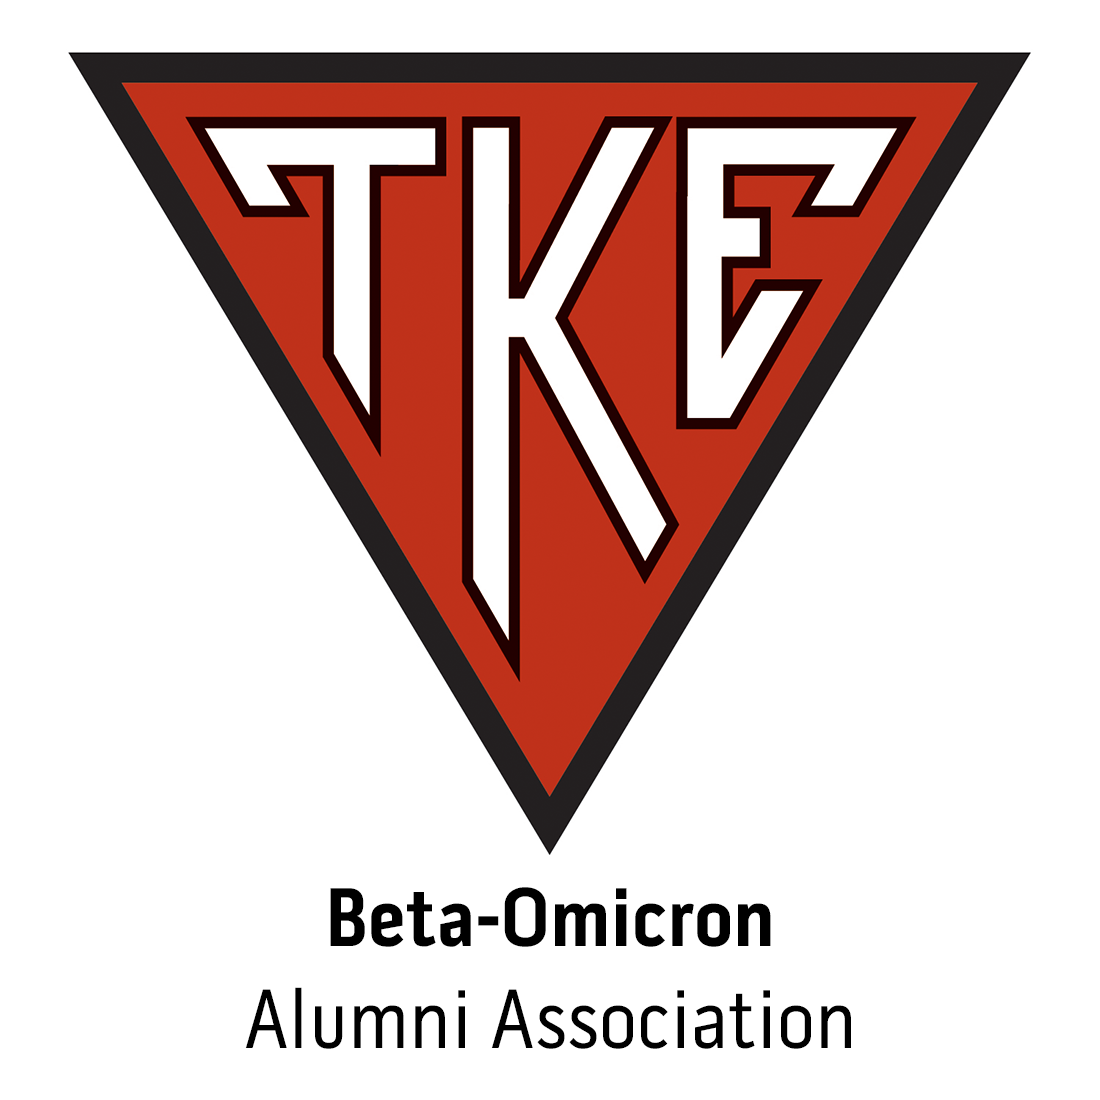 Beta-Omicron Alumni Association at Wayne State University